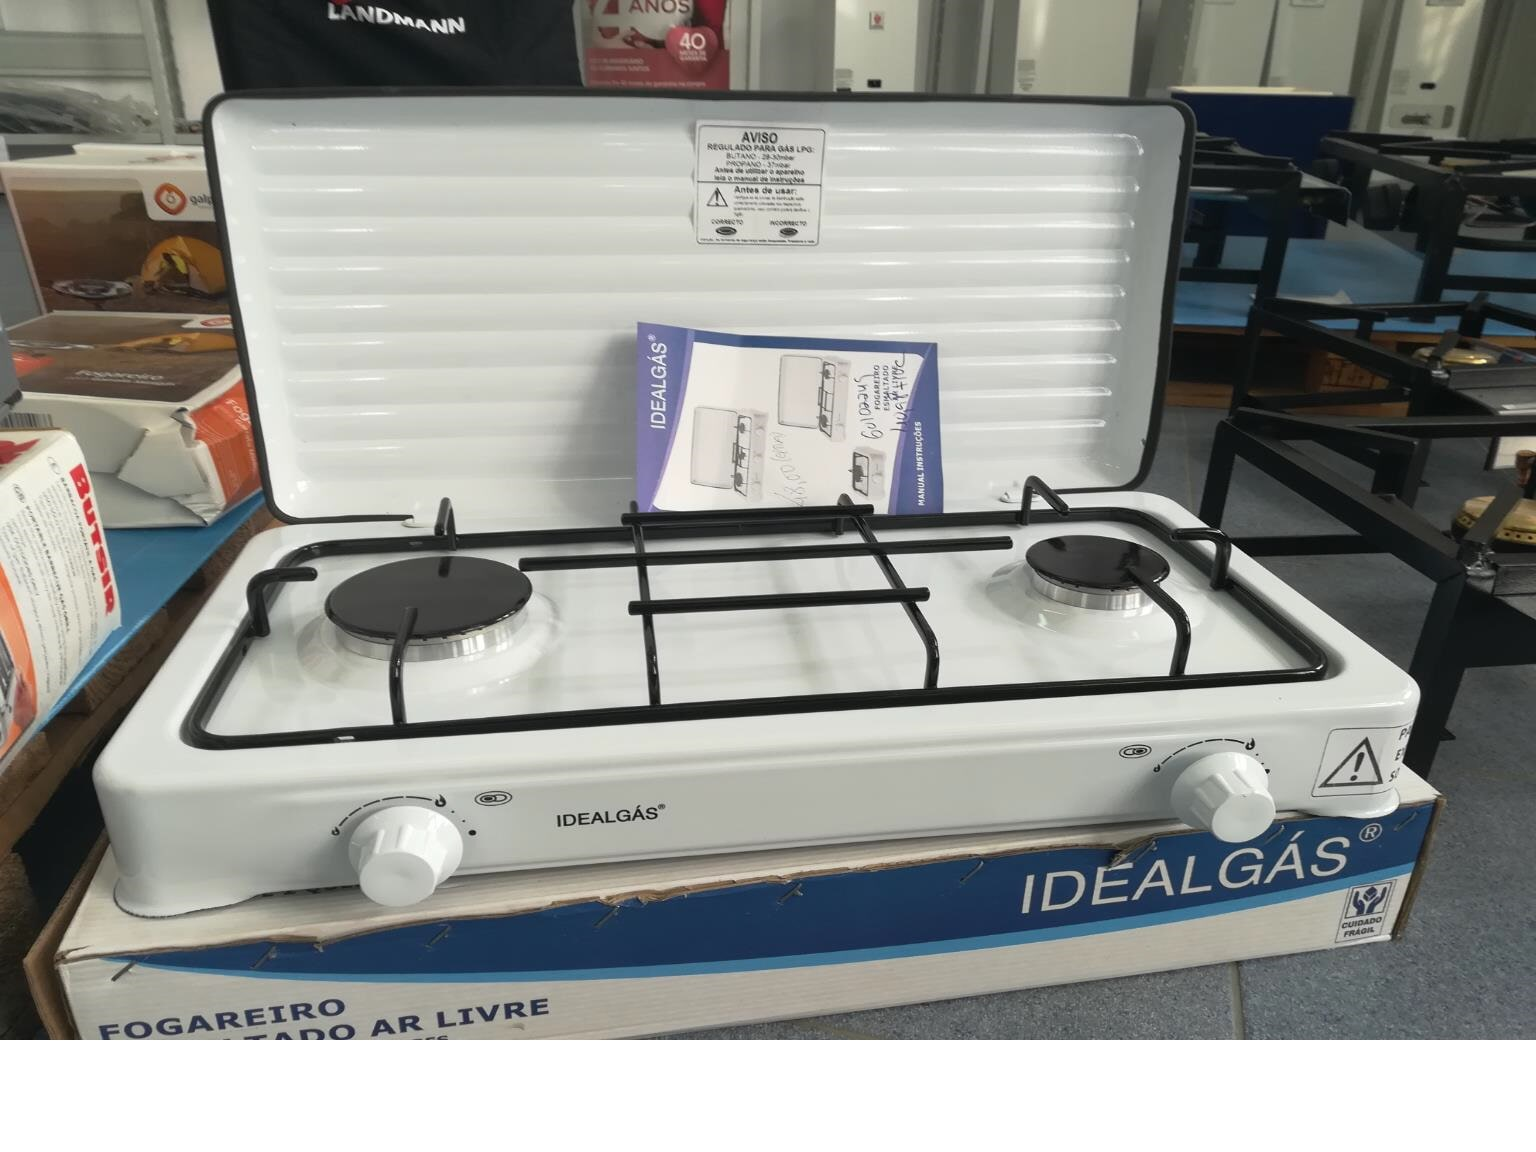 Gas stove with 2 burners; easy to carry